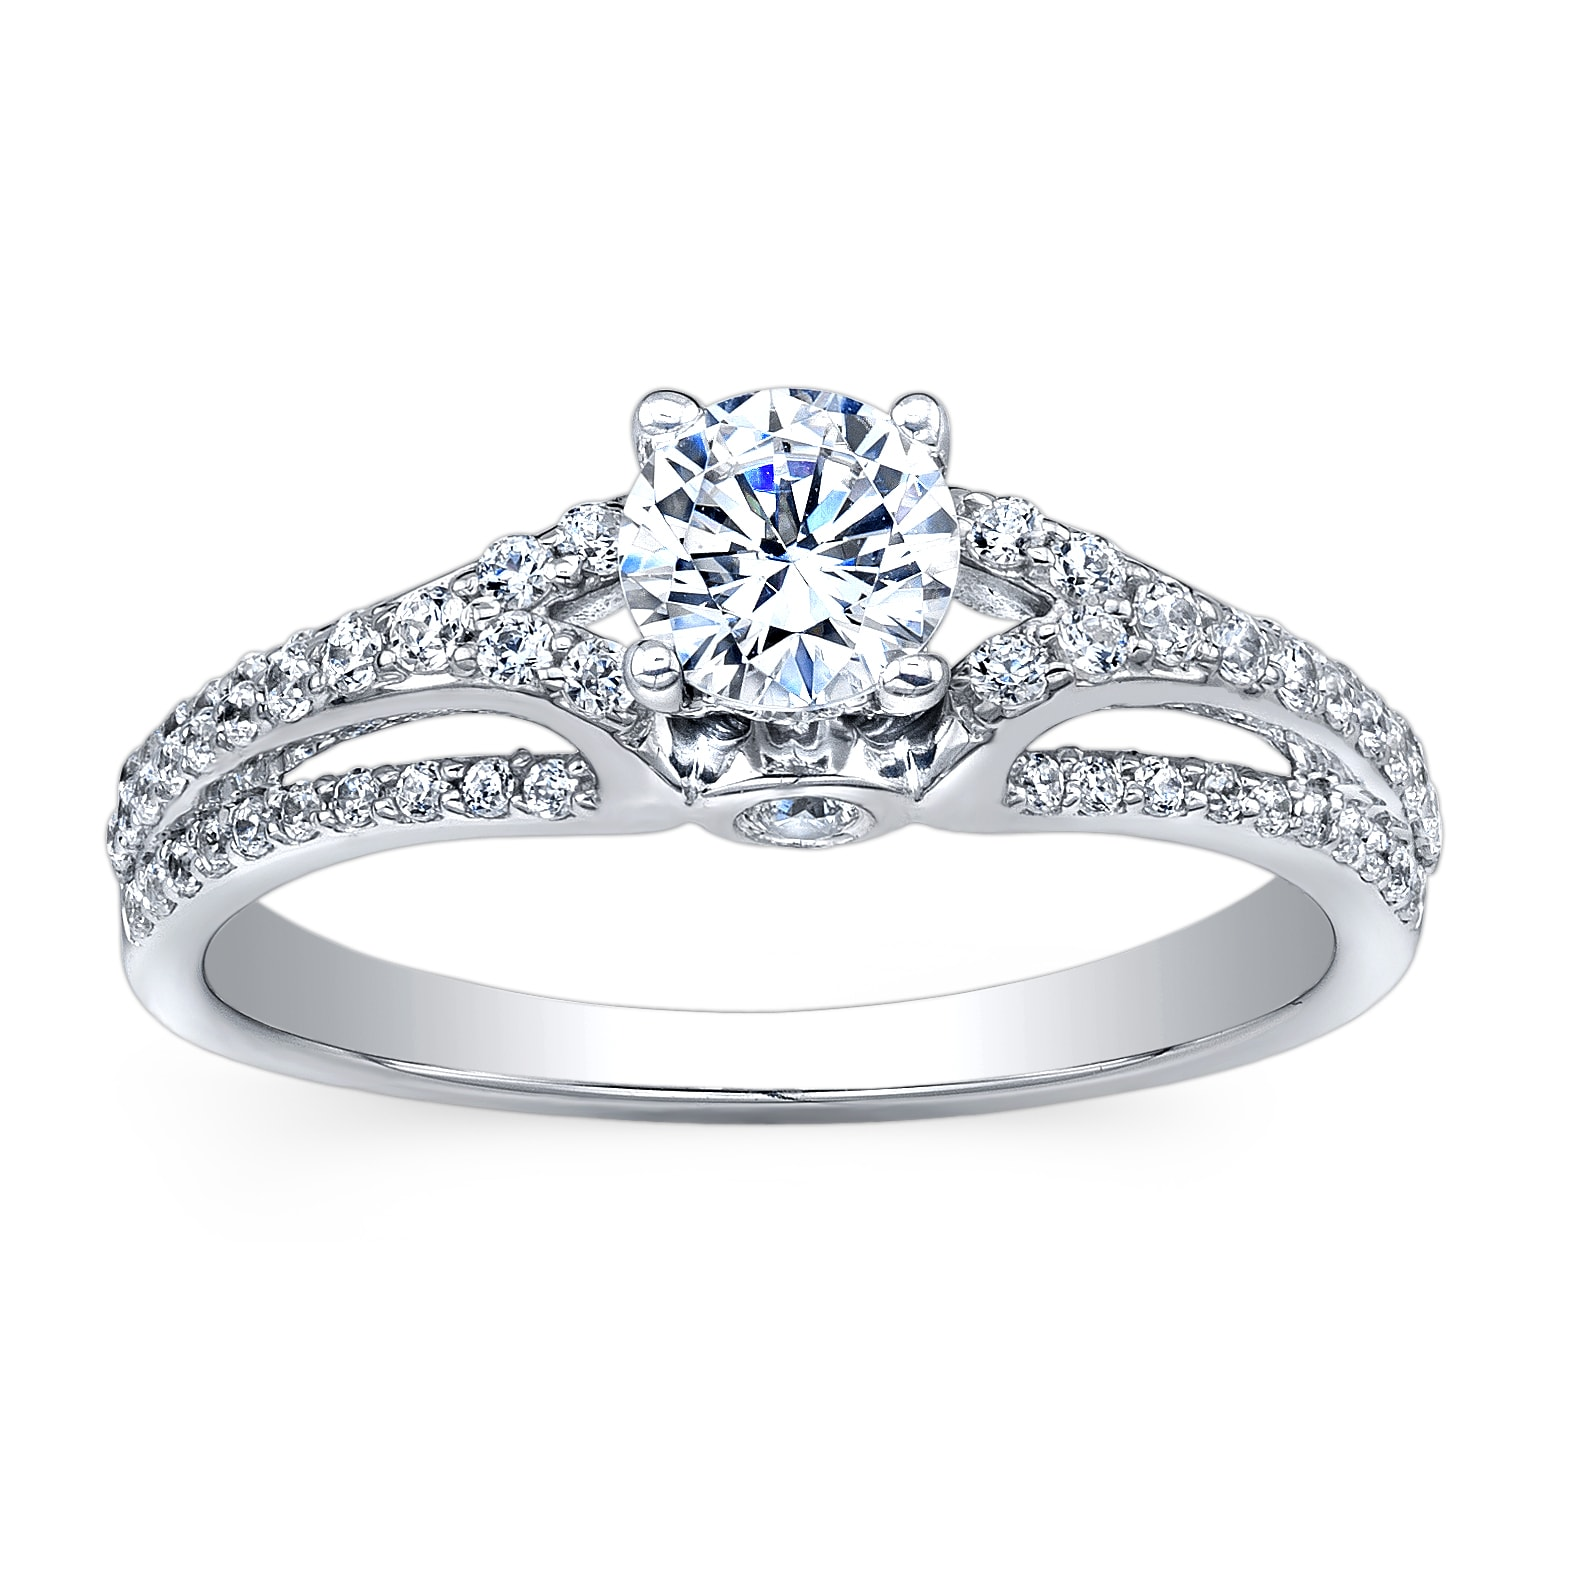 14k White Gold 1ct TDW Diamond Engagement Ring (HI, I2-I3)